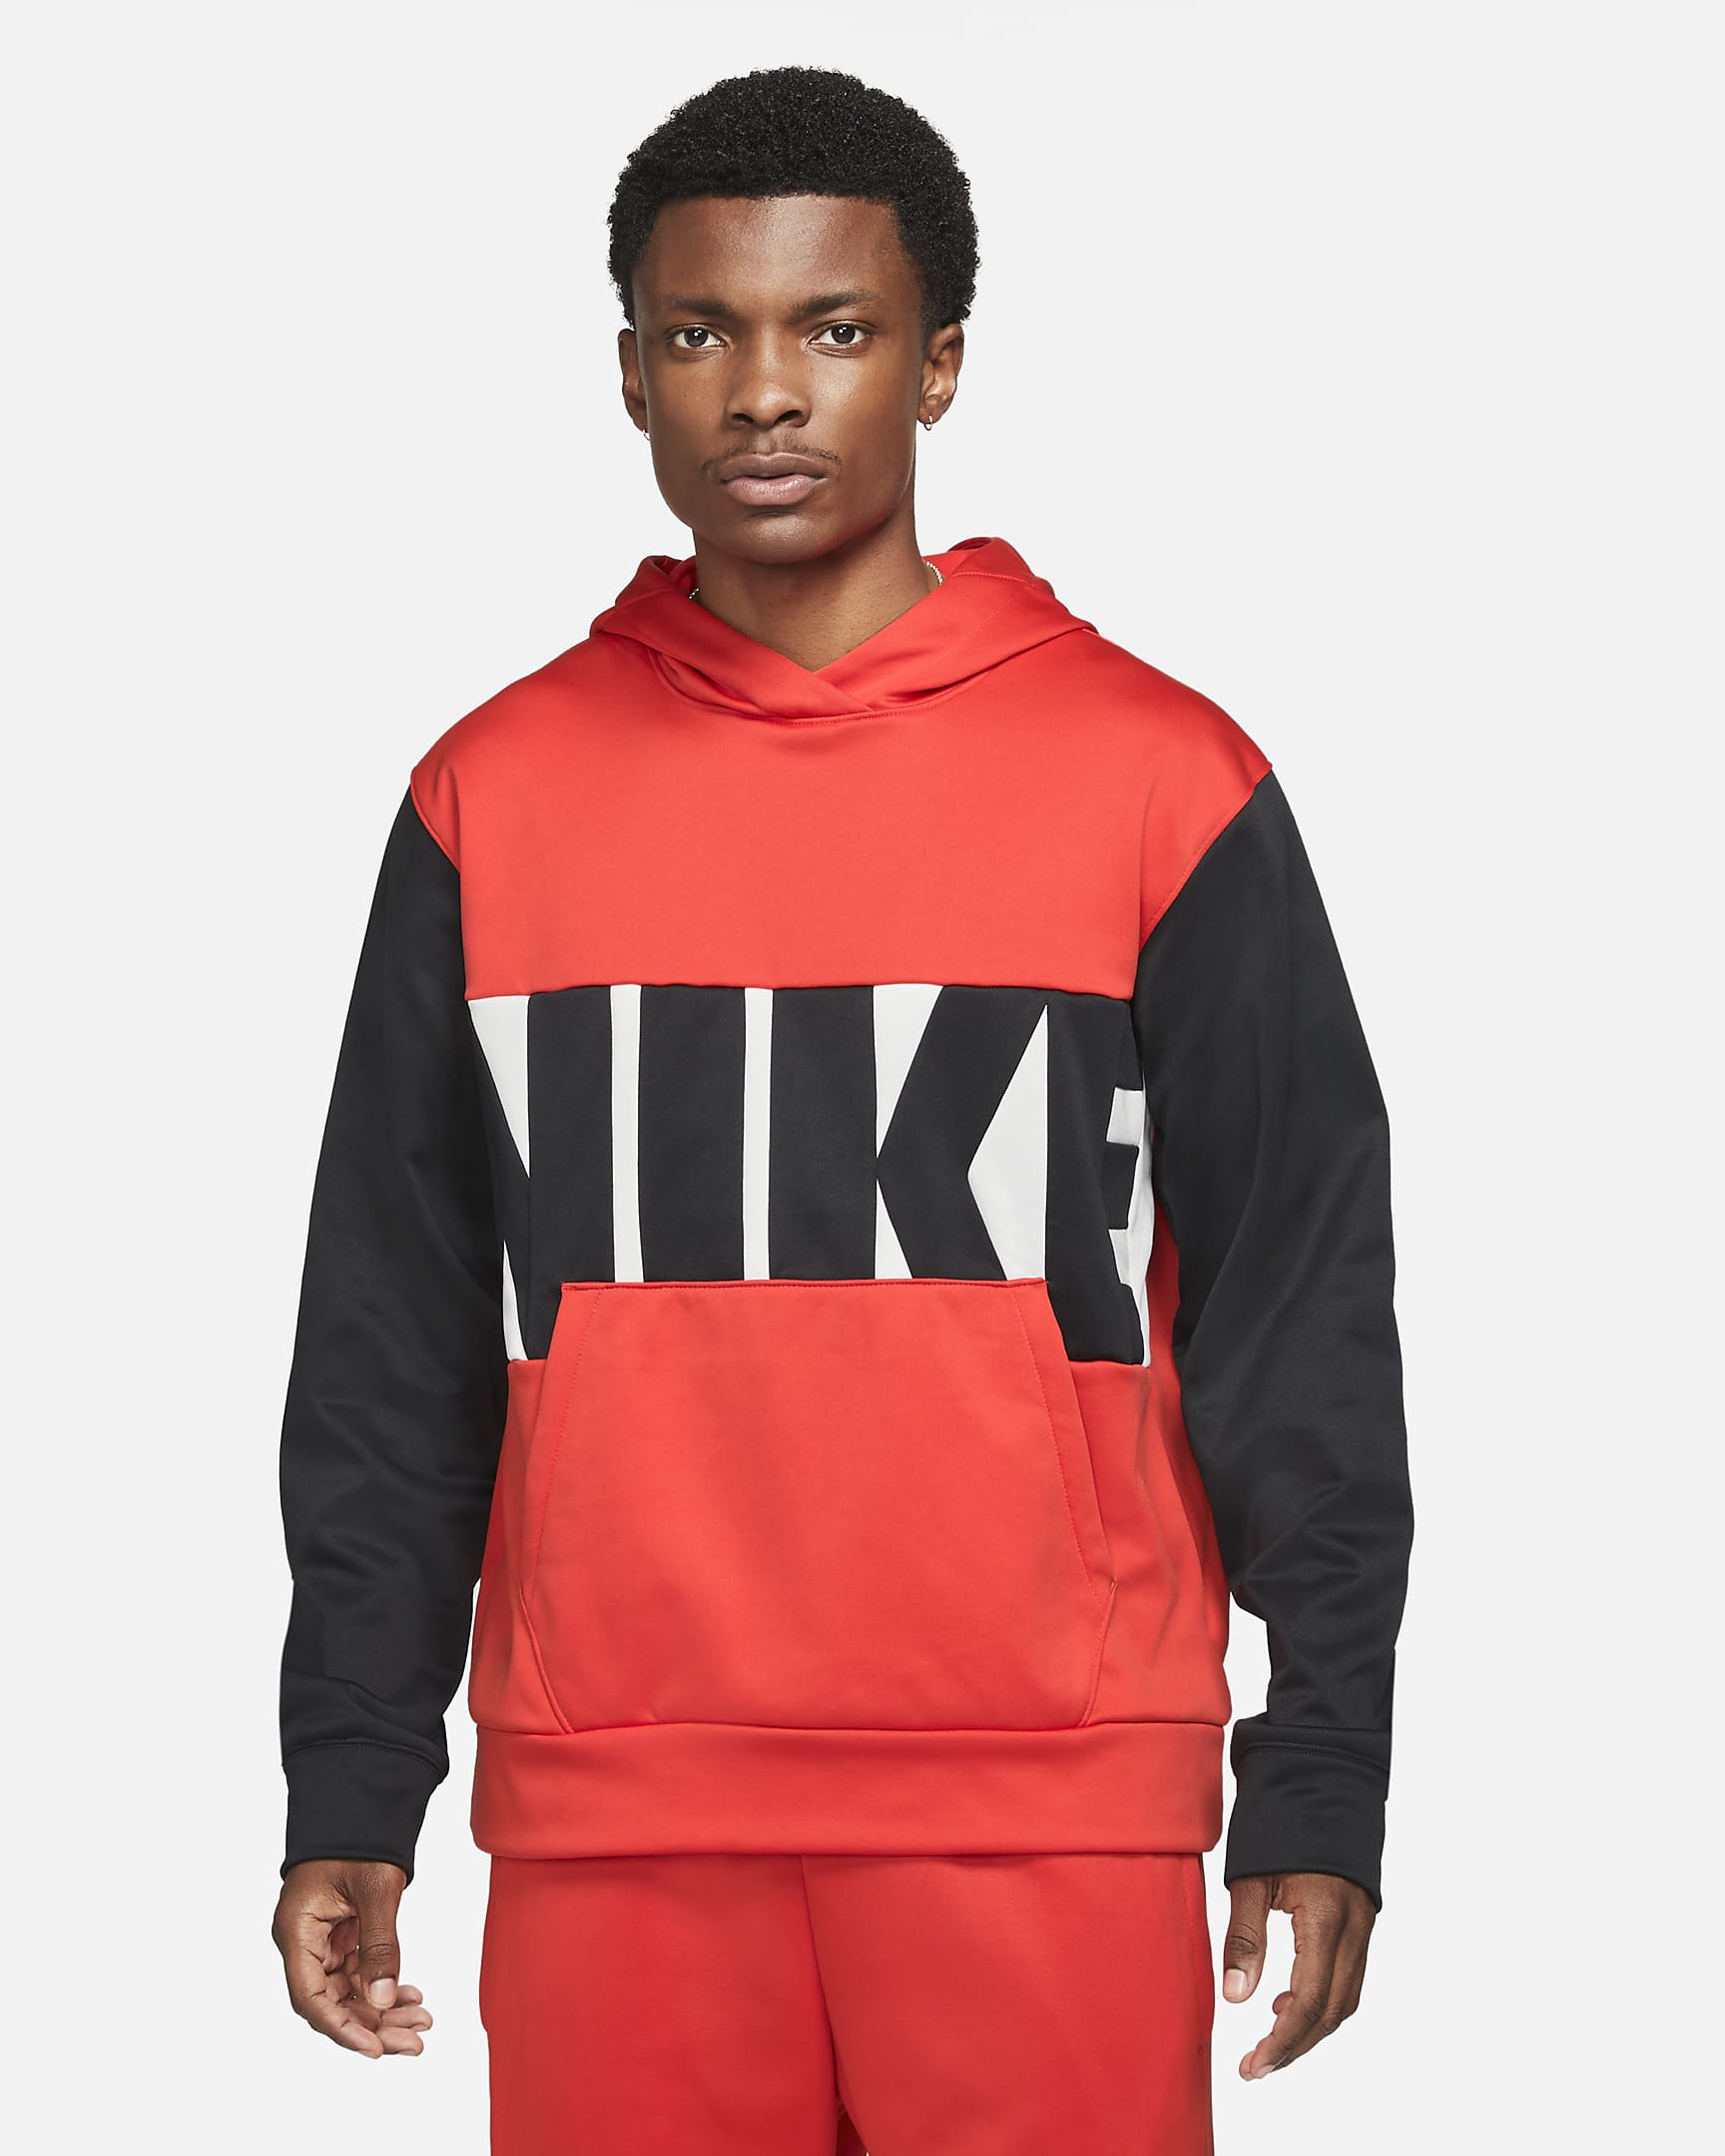 nike-therma-fit-mens-basketball-pullover-hoodie-FMk5hq.png